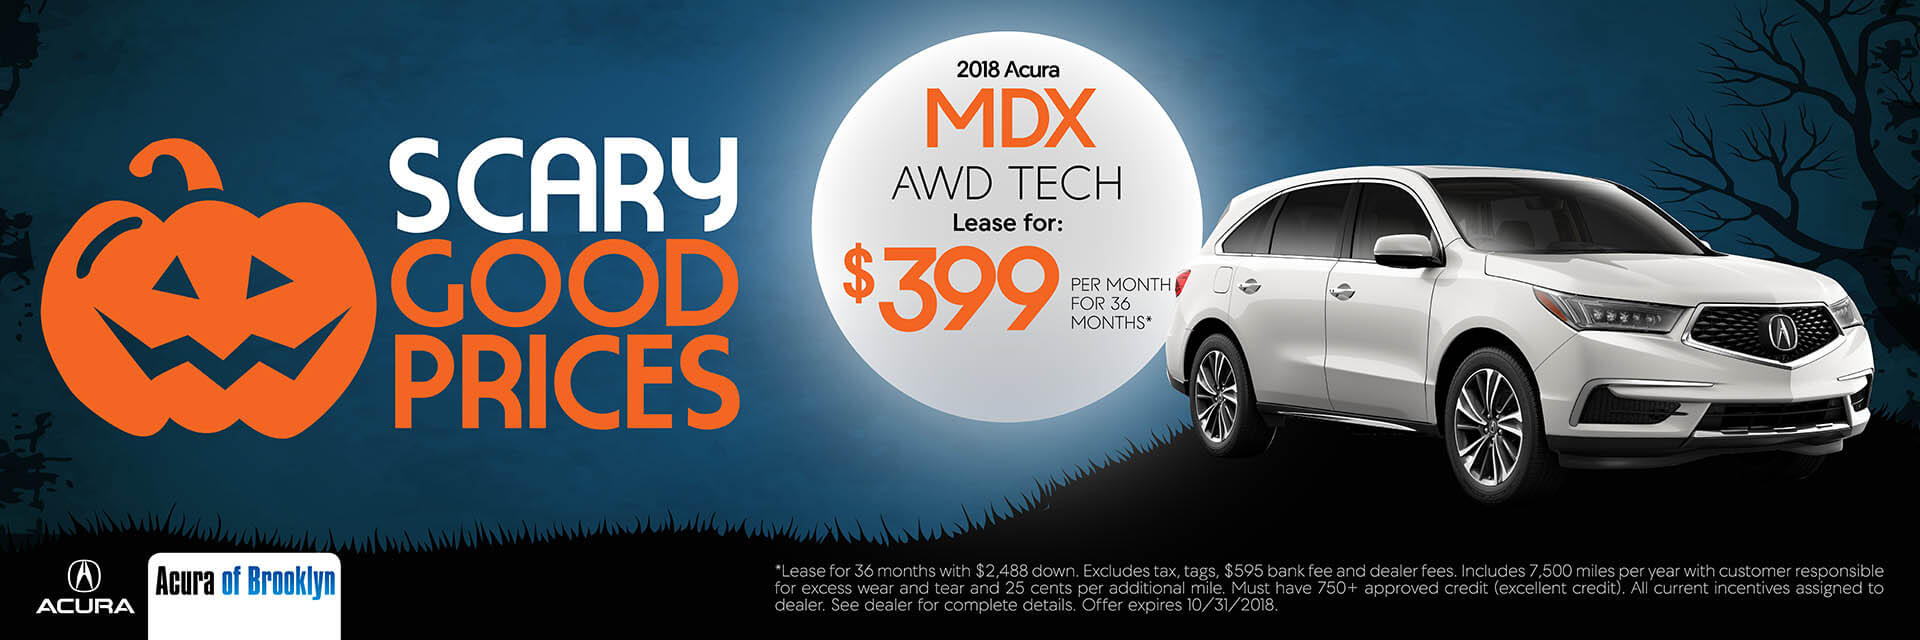 FullService Acura Dealership In Brooklyn NY Acura Of Brooklyn - Acura dealers in pa